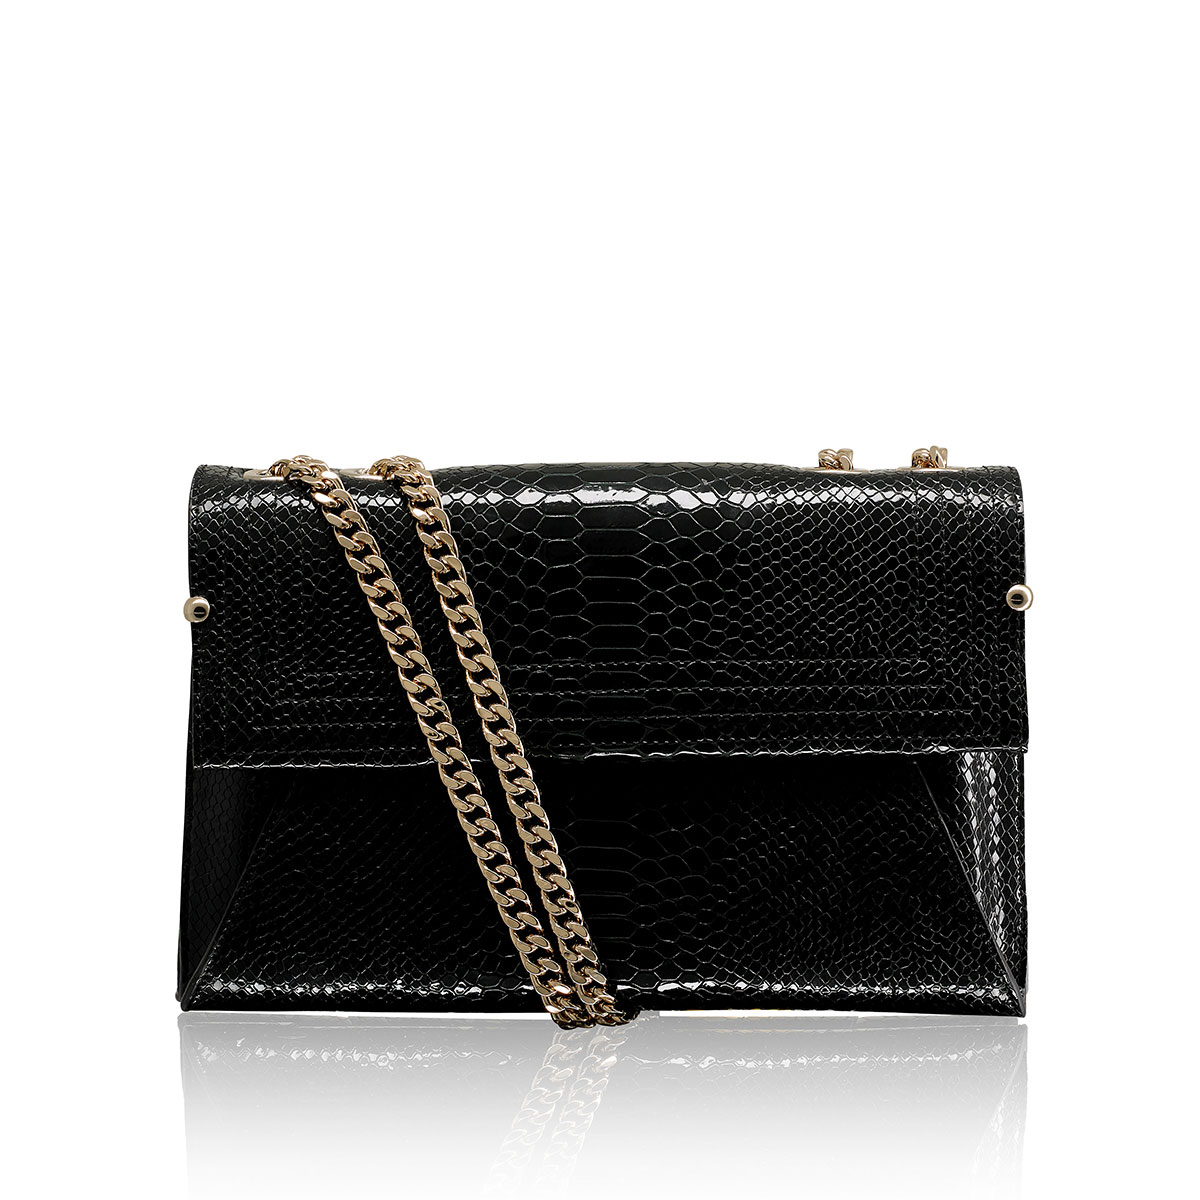 Russell And Bromley SW LUMIERE Chain Shoulder Bag